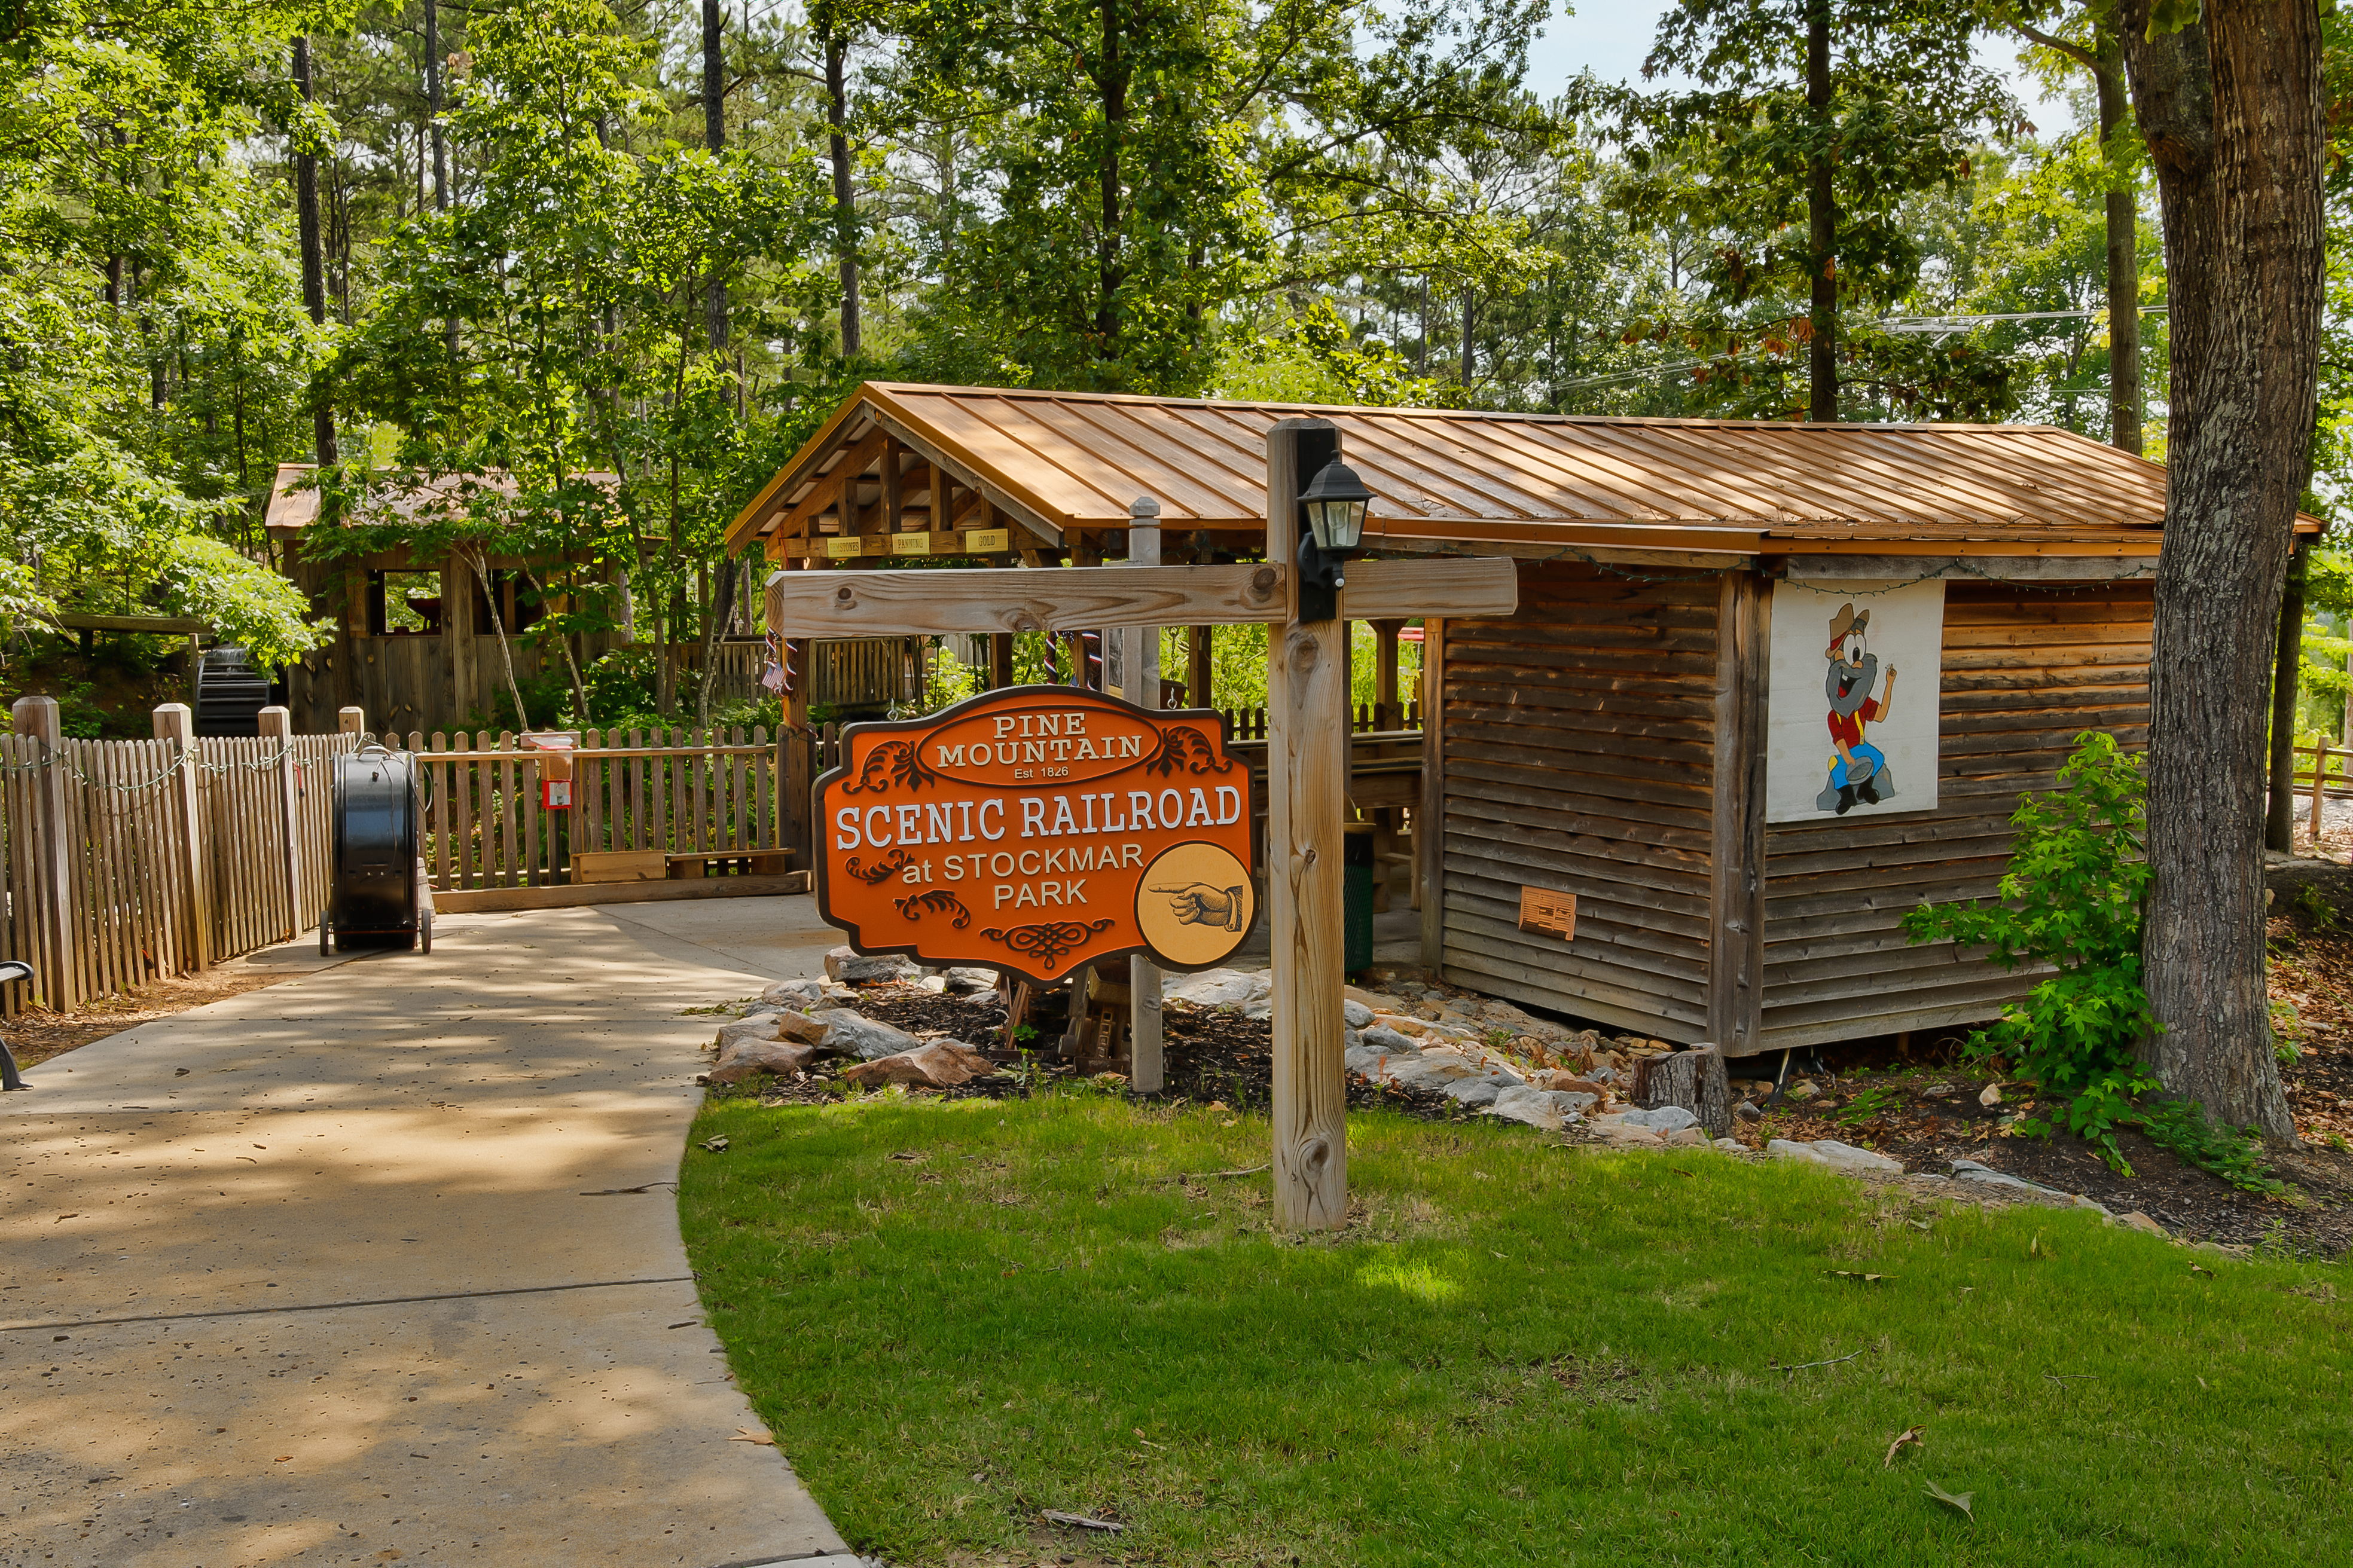 pine mountain gold museum & scenic railroad at stockmar park